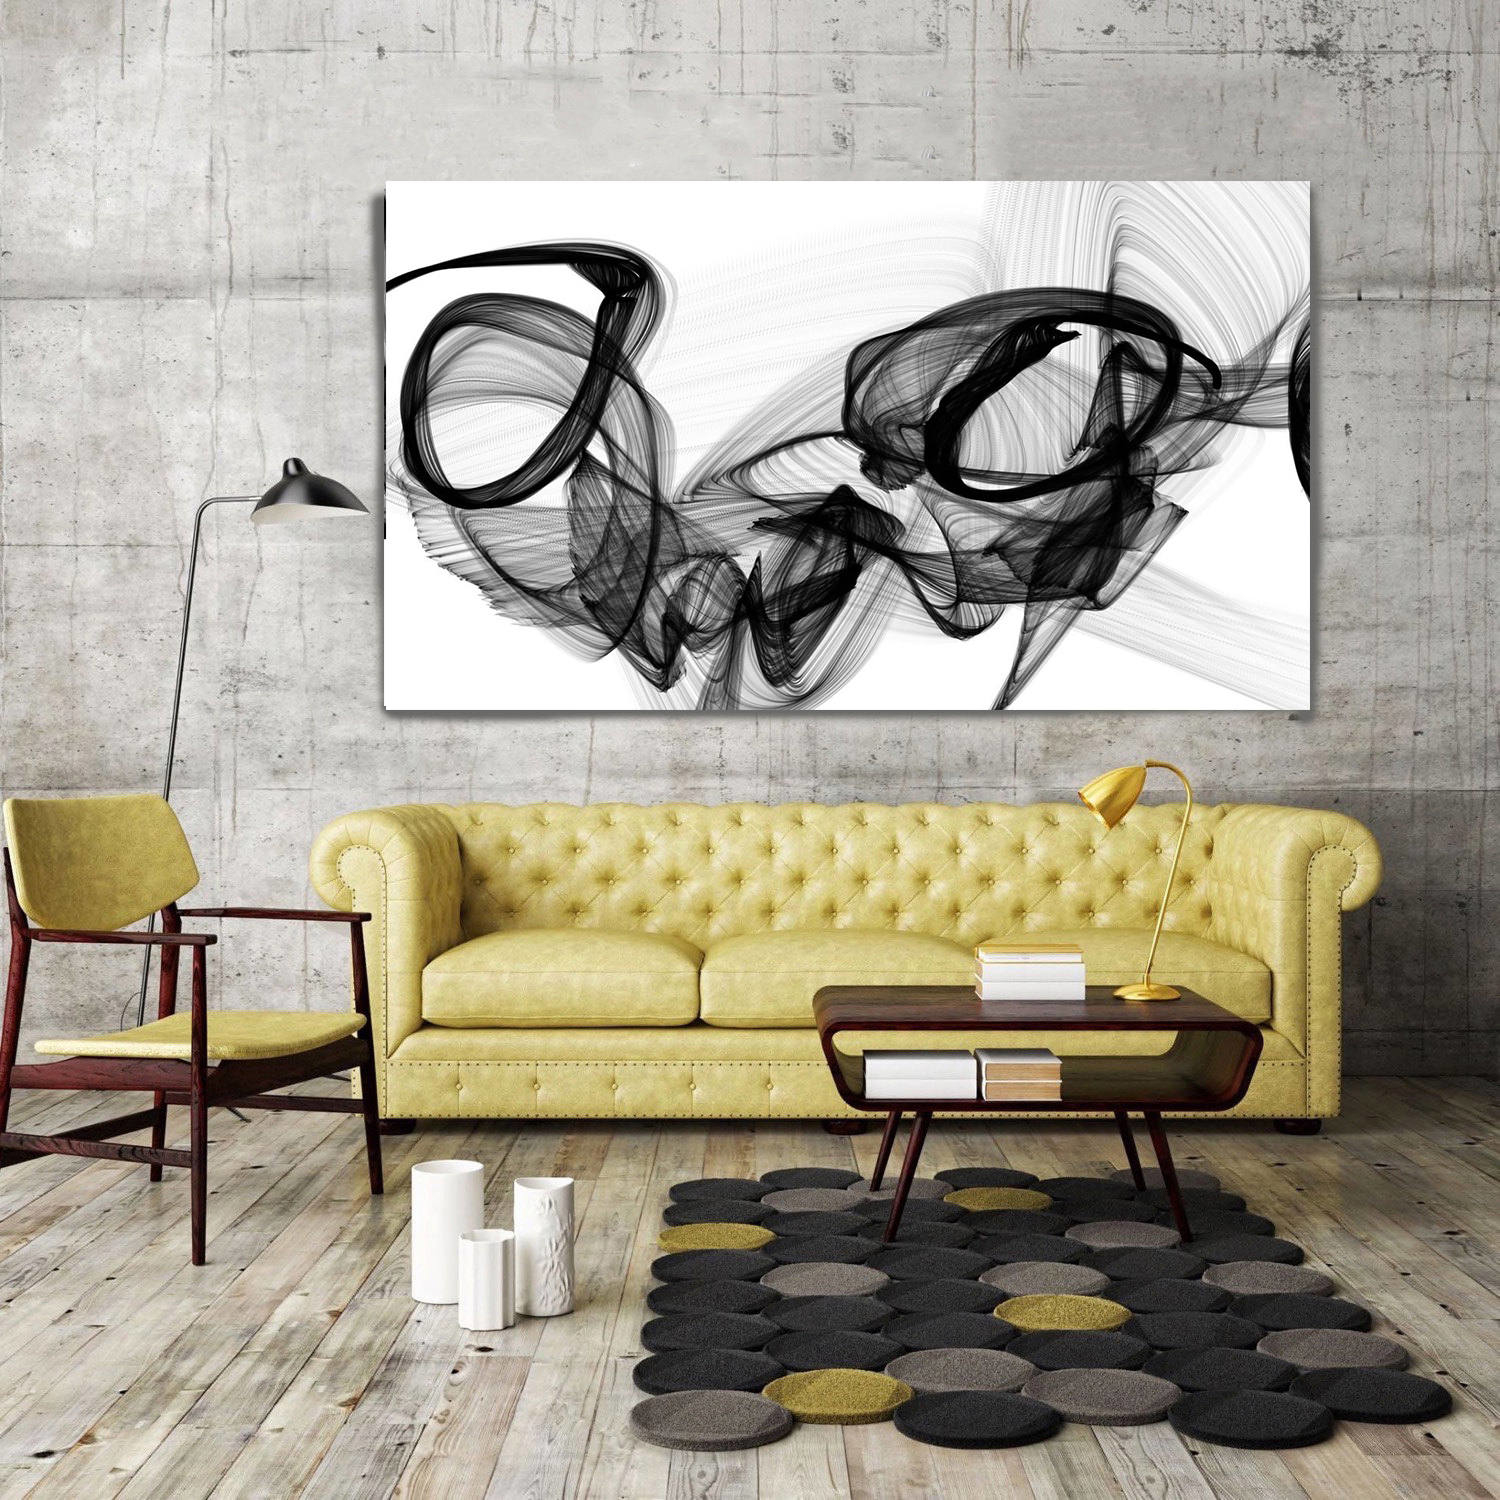 Marriage Abstract Painting Print Wrapped Canvas Irena Orlov The